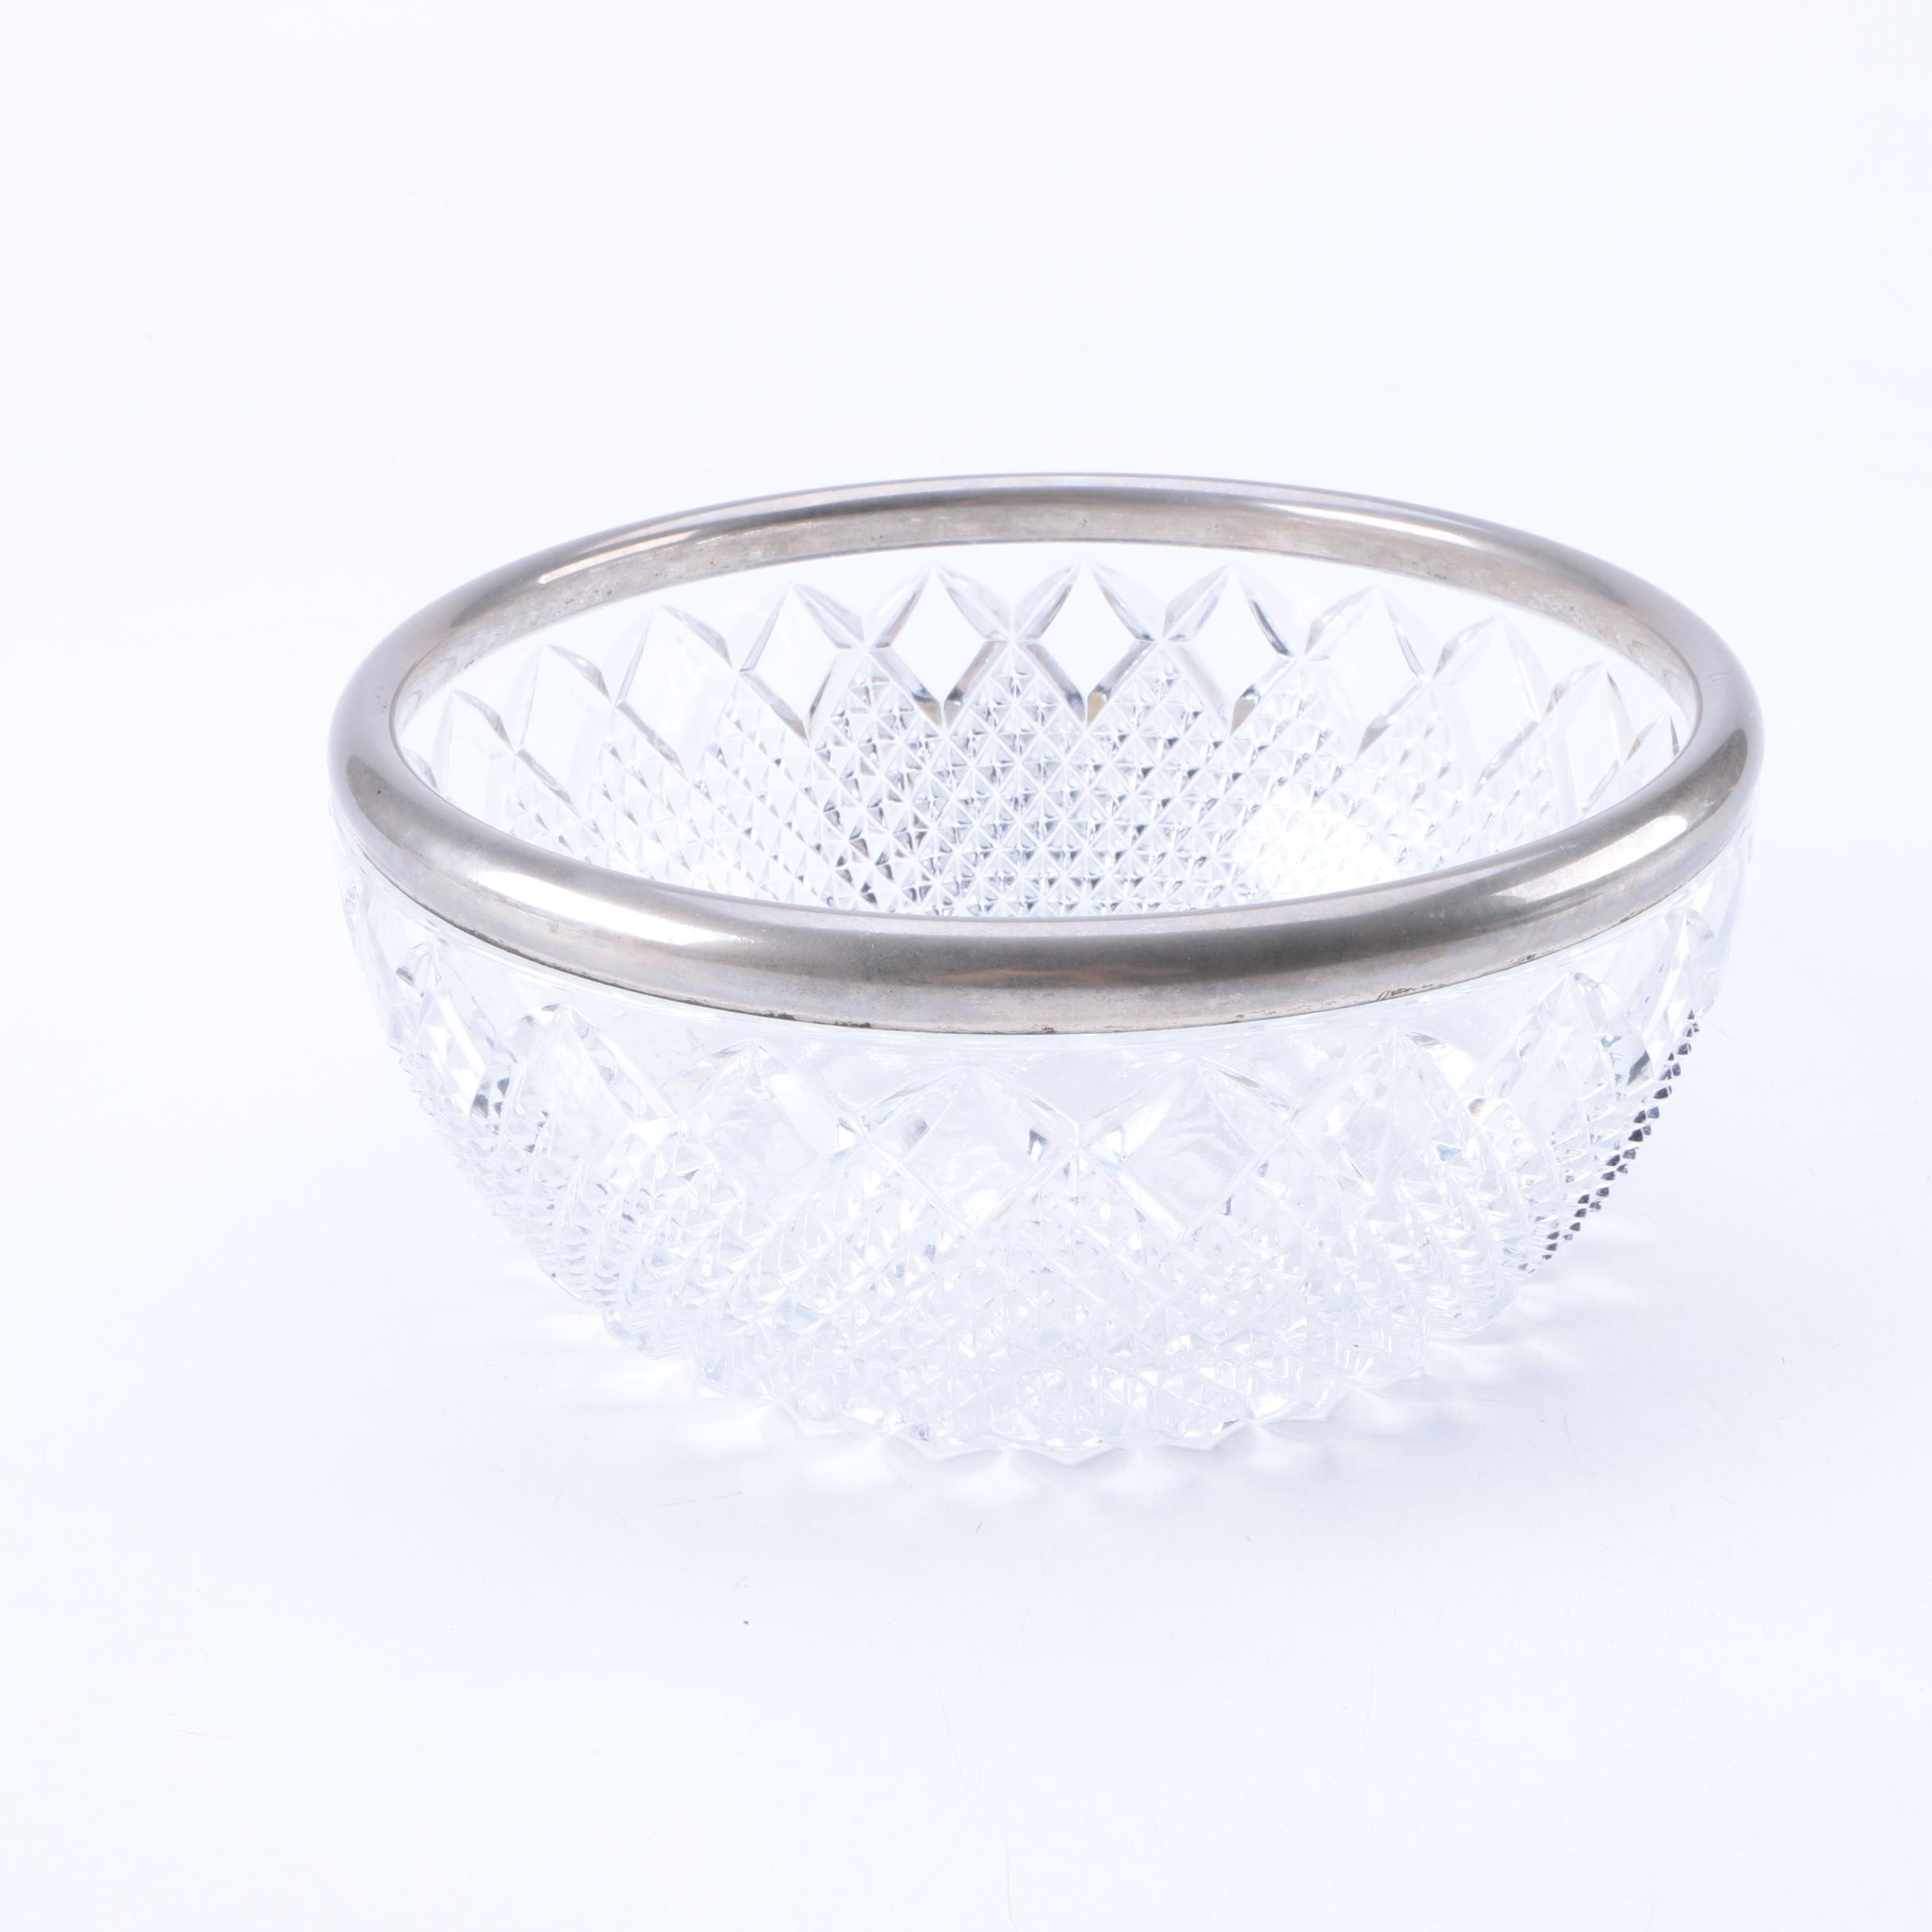 Crystal Bowl with Silver Tone Rim